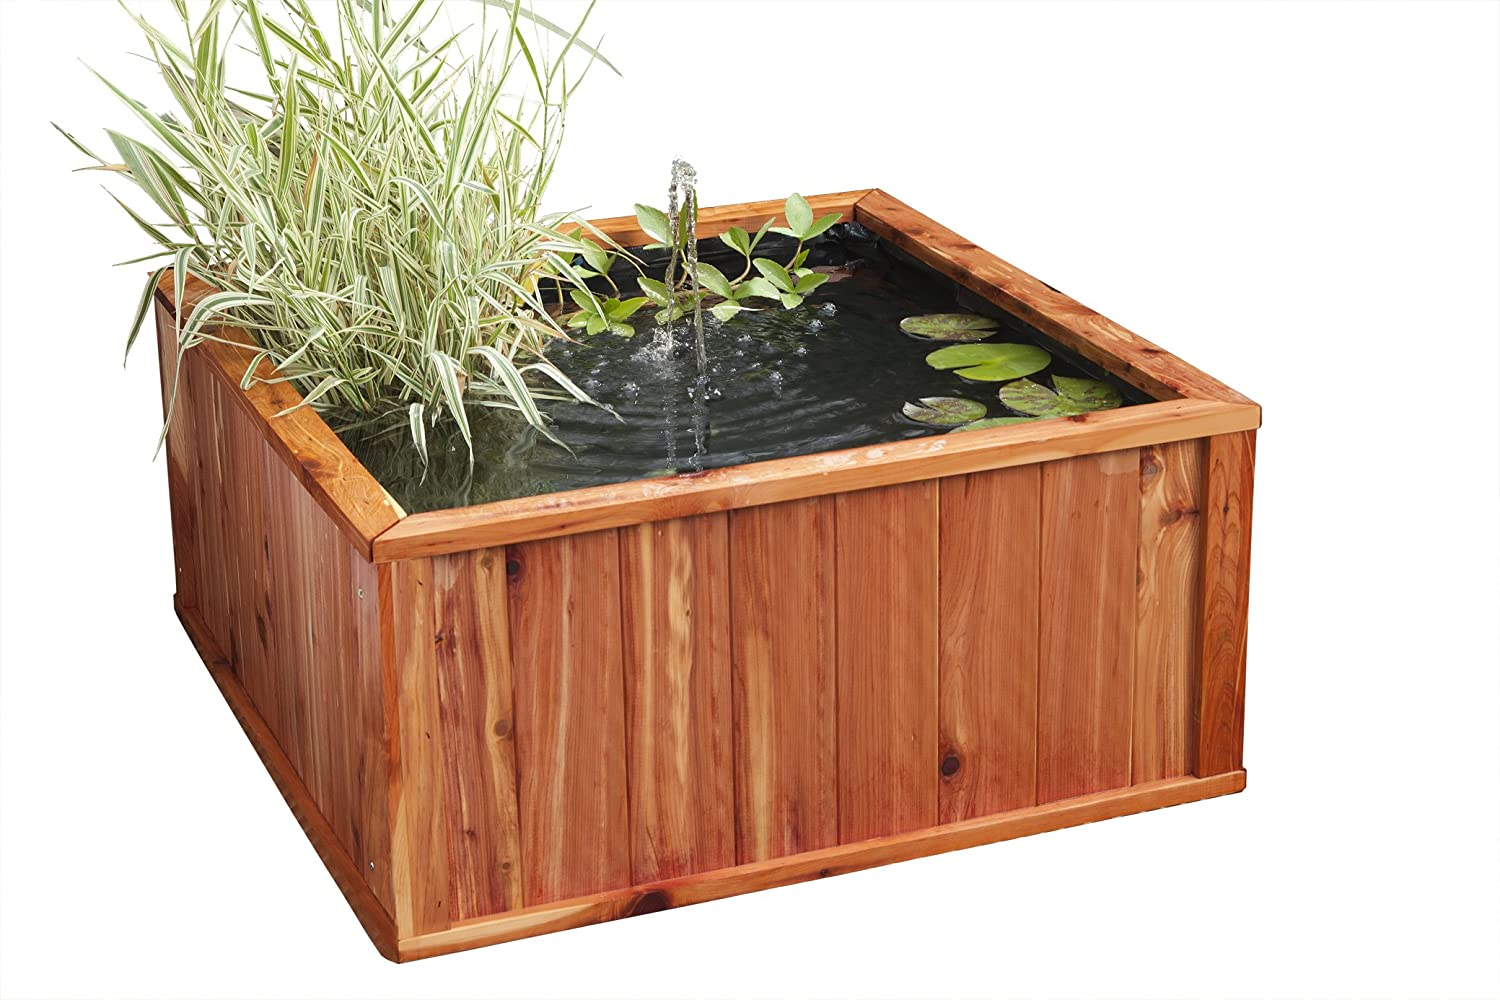 Blagdon 80cm Complete Patio Hand Crafted Cedar Liberty Water Feature Pool with Remote Control and Wireless Interpet